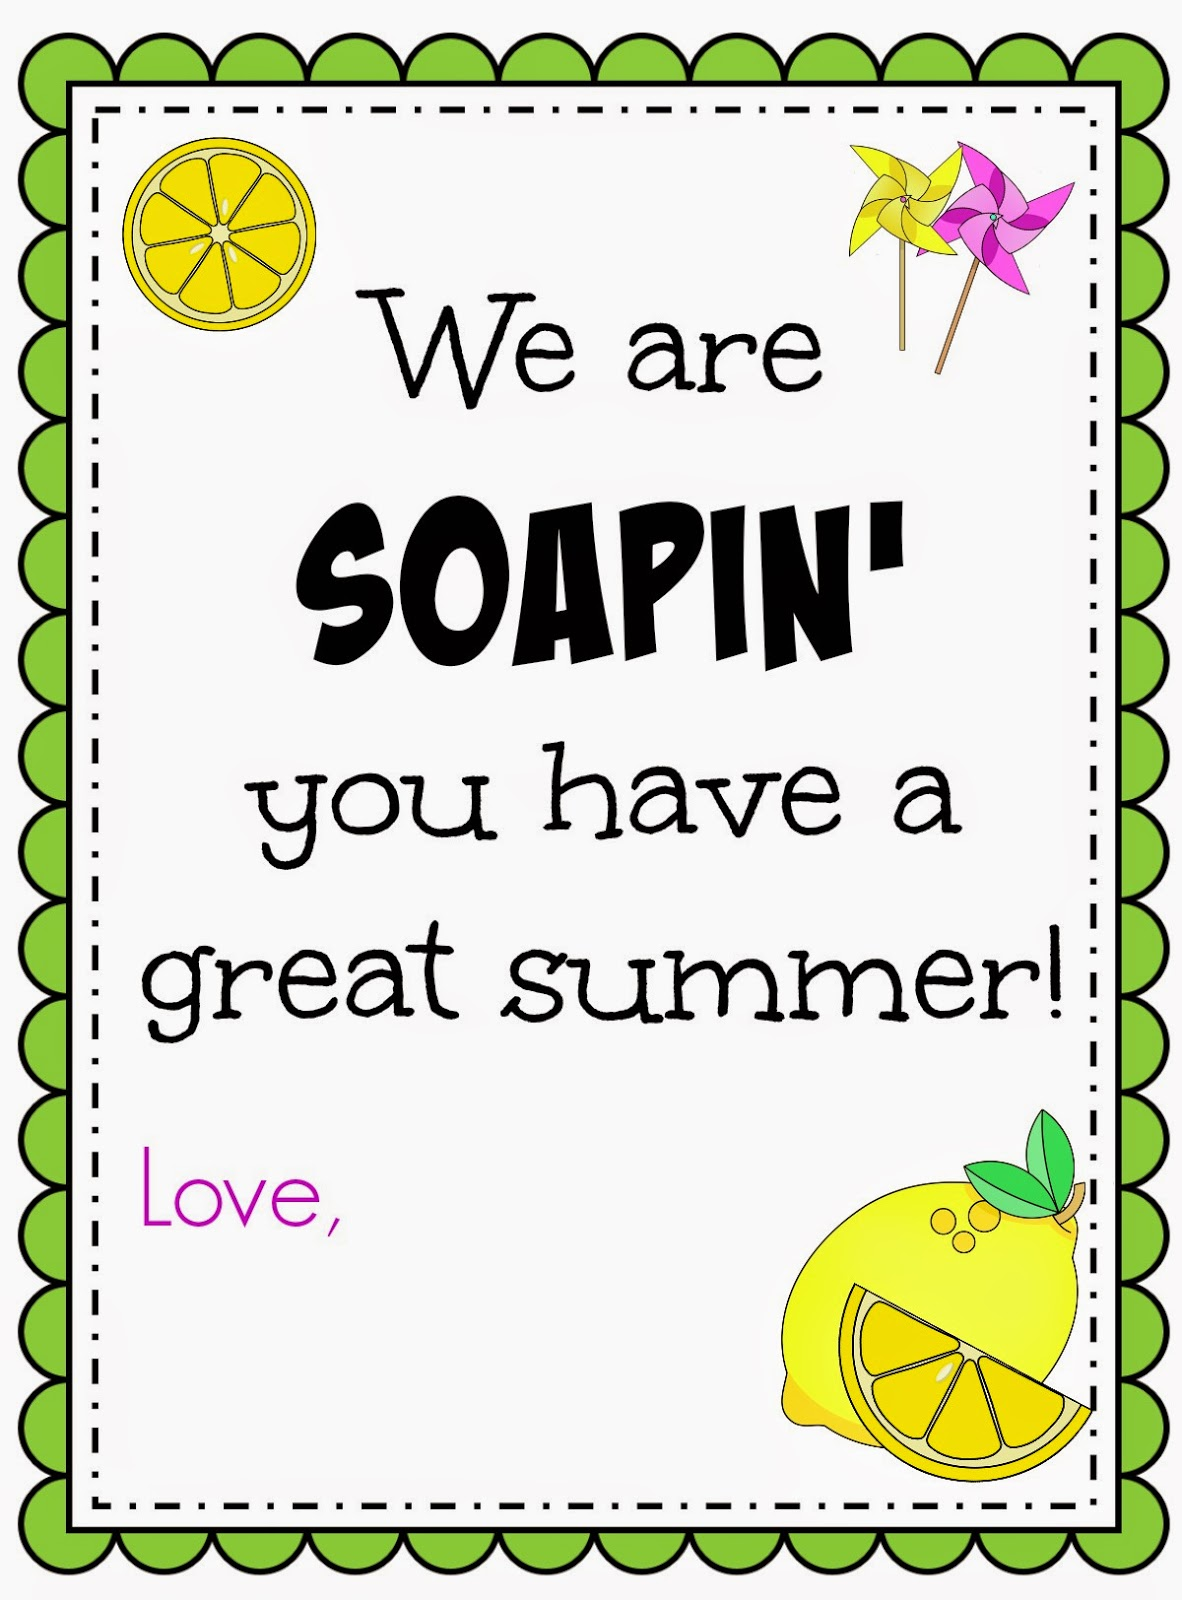 Soapin you have great summer, teacher gifts, school staff gift, coach gift, printable gift tag, printable teacher gift tag, teacher appreciation gift, PTO gift ideas, volunteer appreciation, babysitter gift